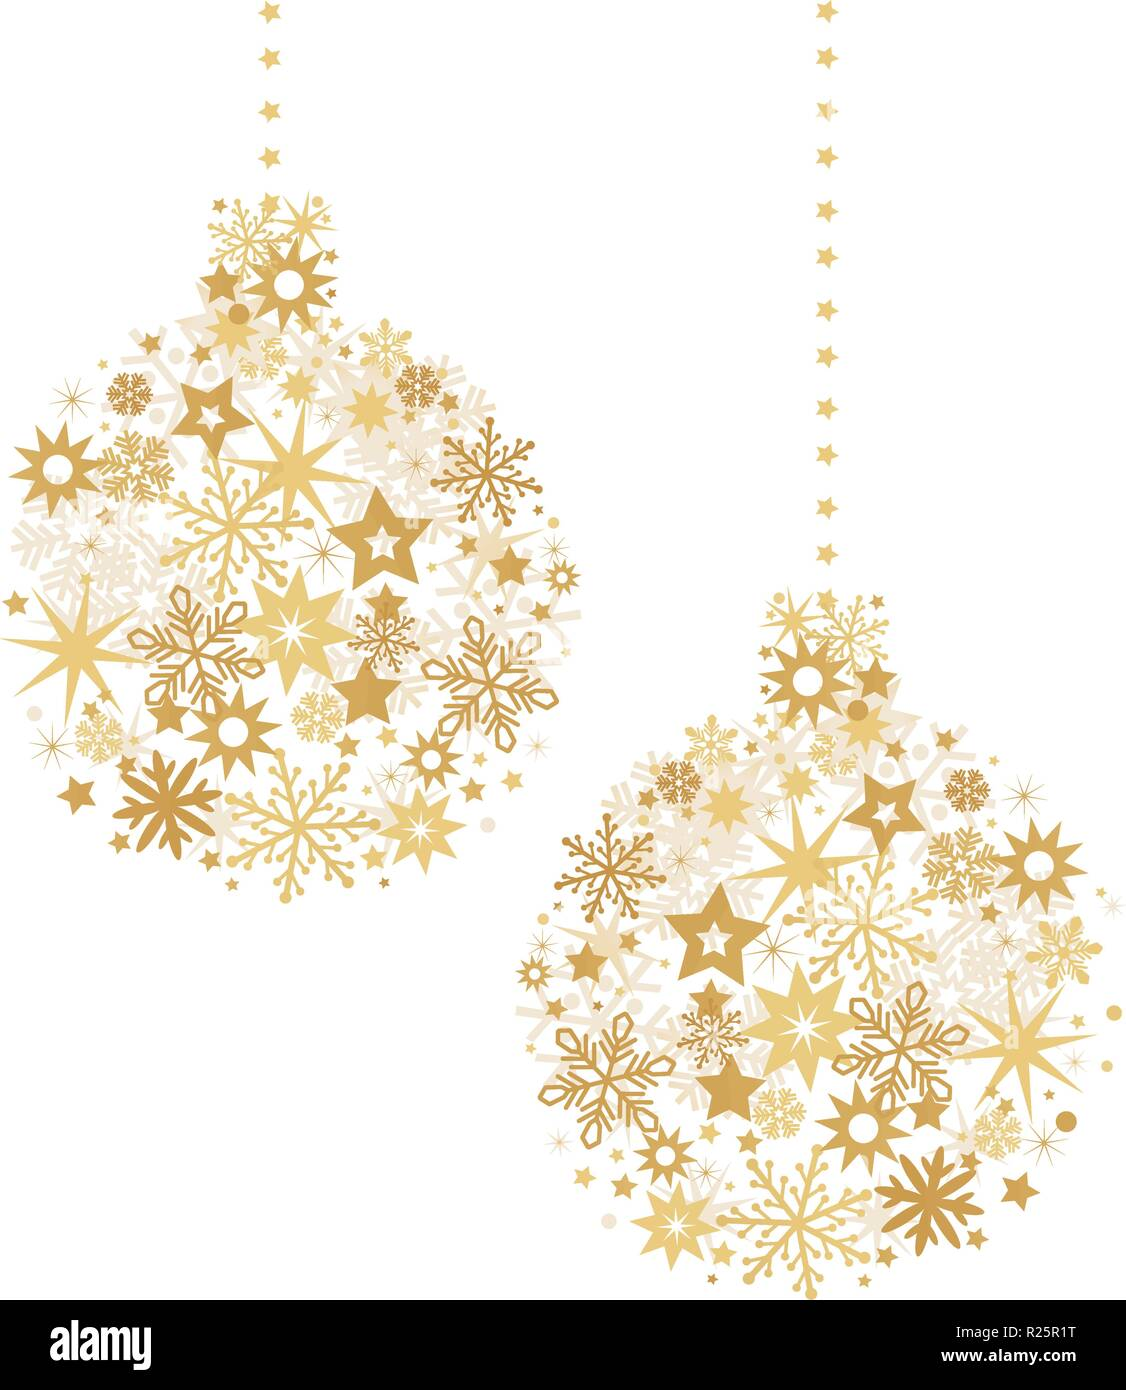 Christmas ball with golden stars illustration with sparkling Christmas glitter ornaments isolated on white - Stock Vector